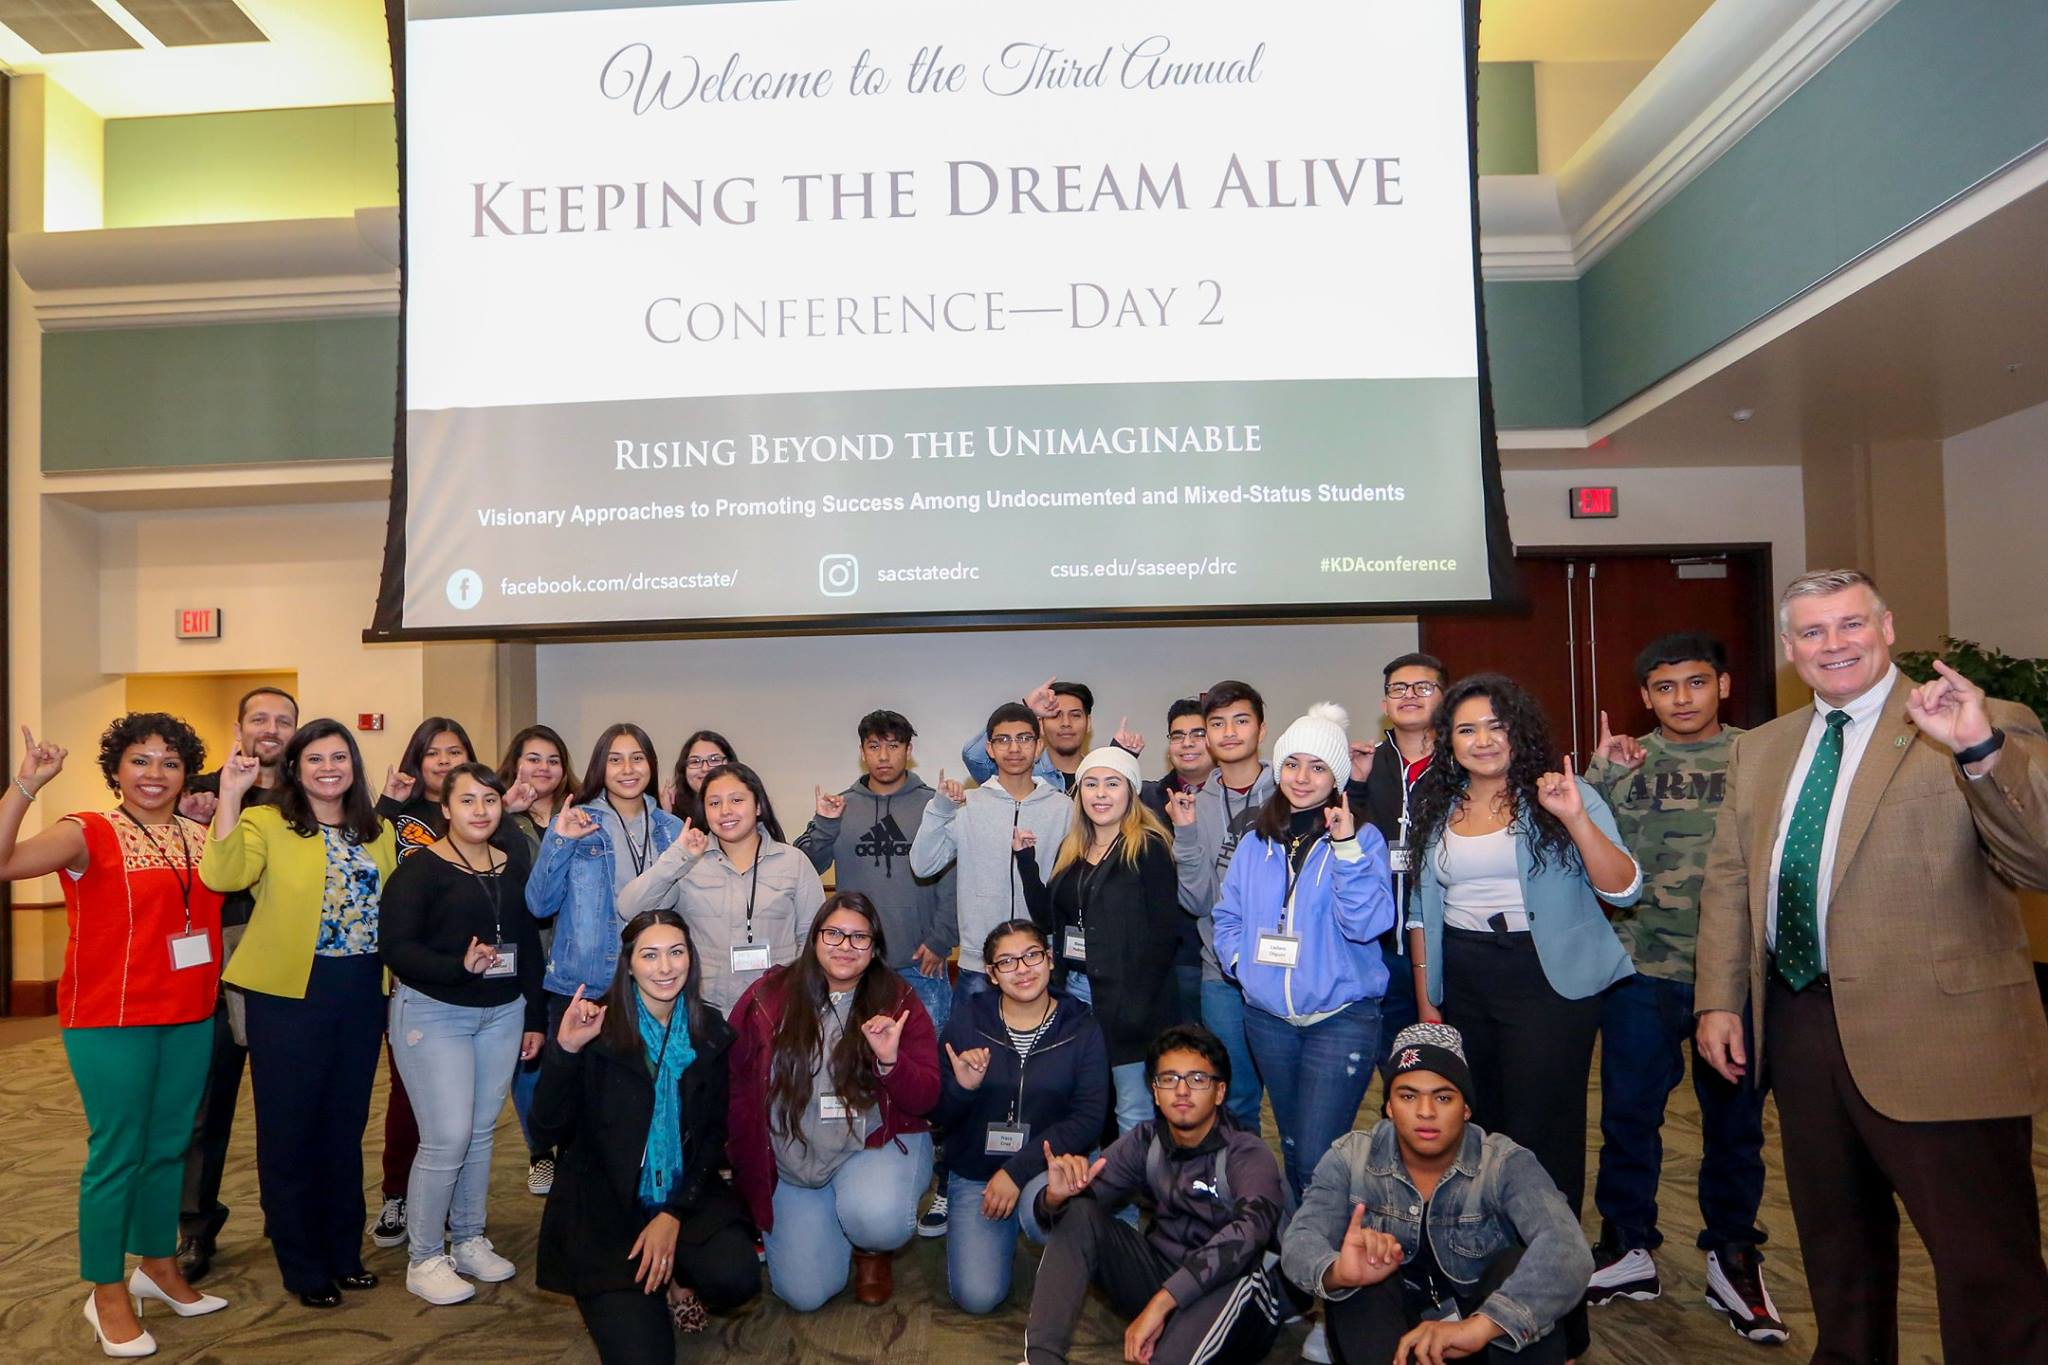 Dreamers convention, though digital, extends its reach